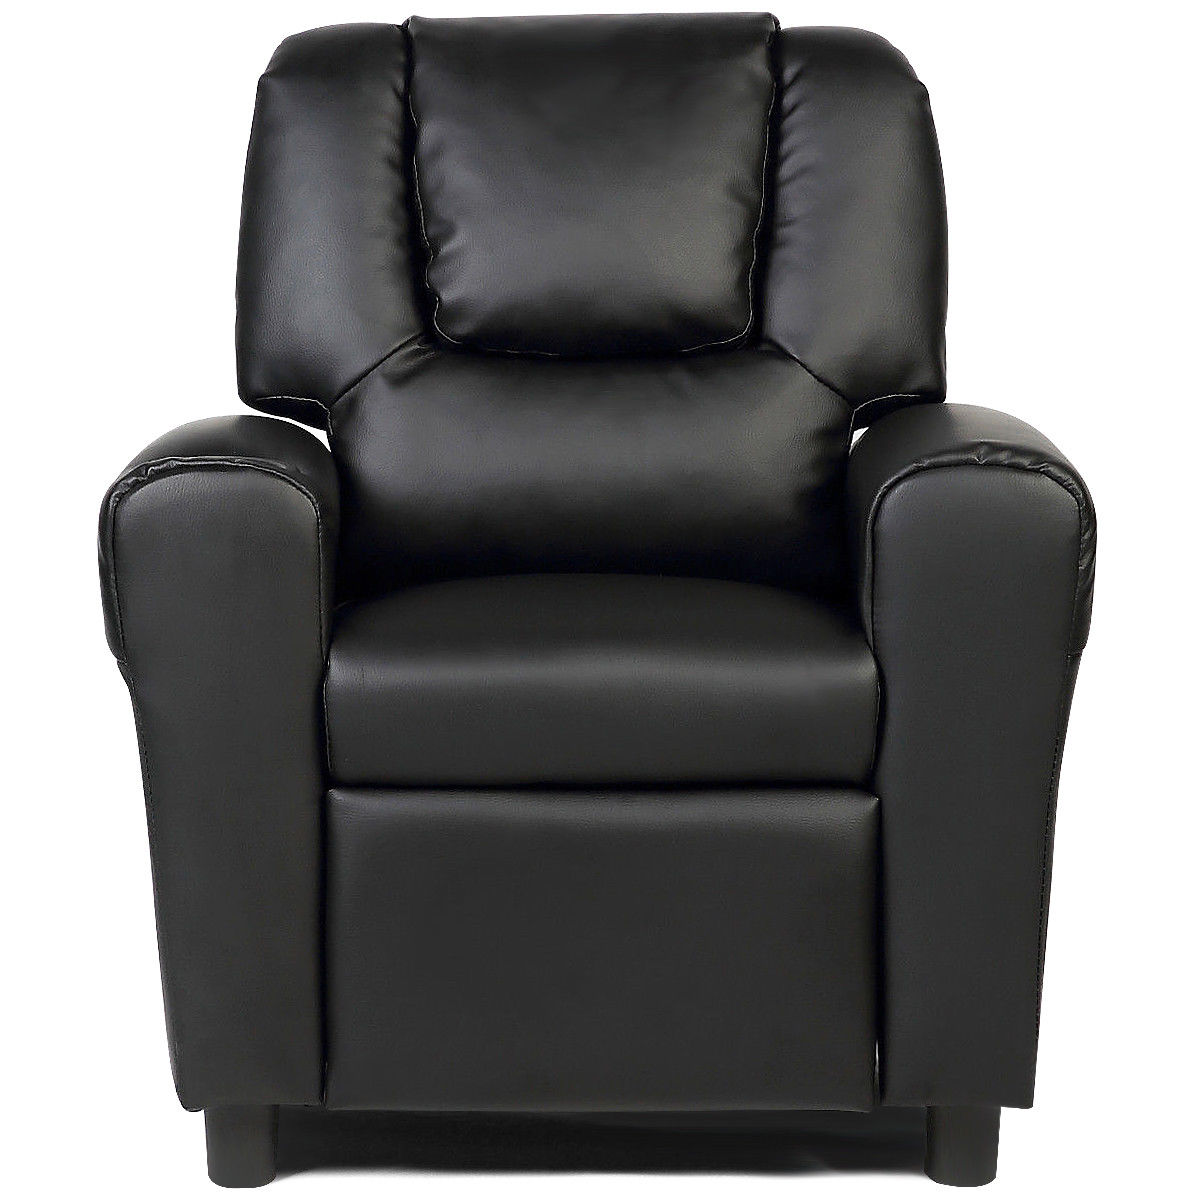 US $112.79 |Costway Kids Recliner Armchair Children's Furniture Sofa Seat Couch Chair wCup Holder Black| | AliExpress